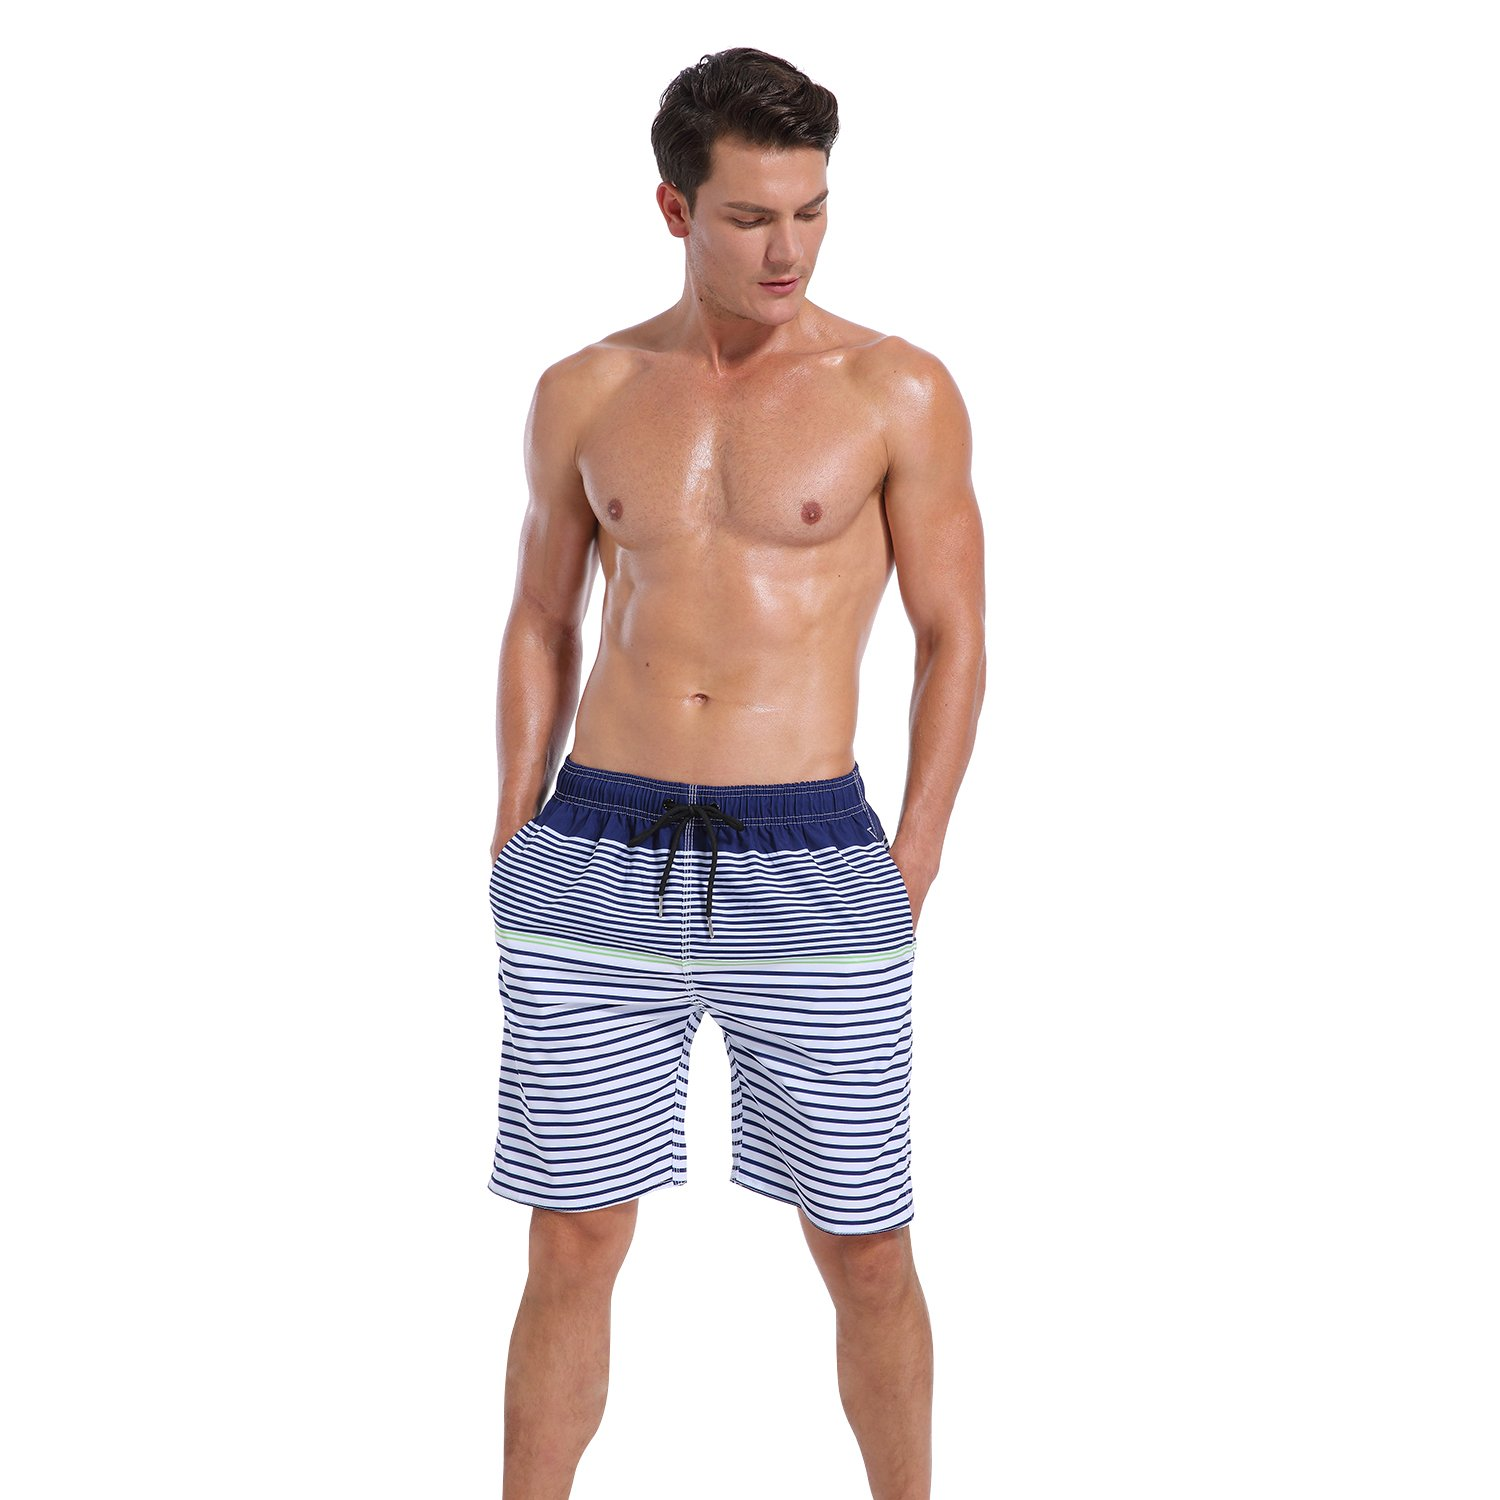 5f0550df85 Men QRANSS Mens Quick Dry Swim Trunks Bathing Suit Striped Shorts with  Pockets